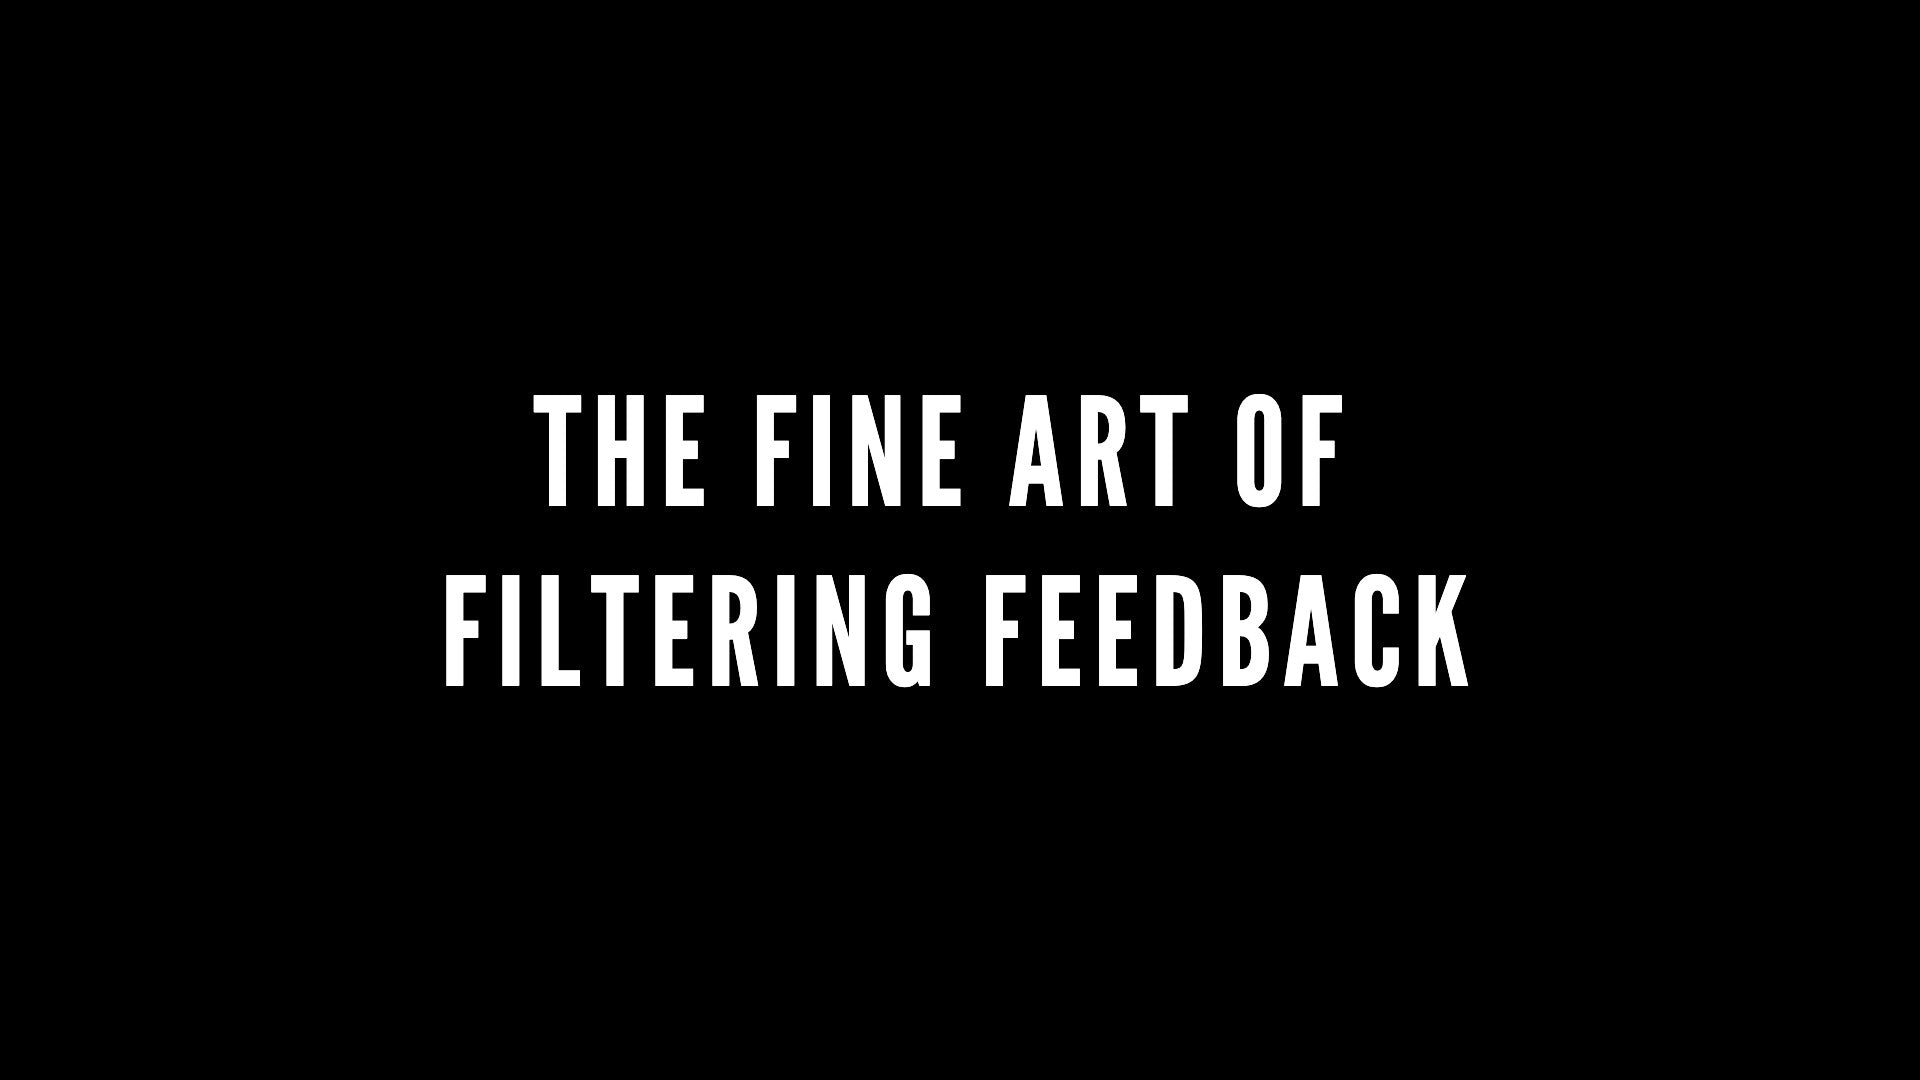 The Fine Art of Filtering Feedback